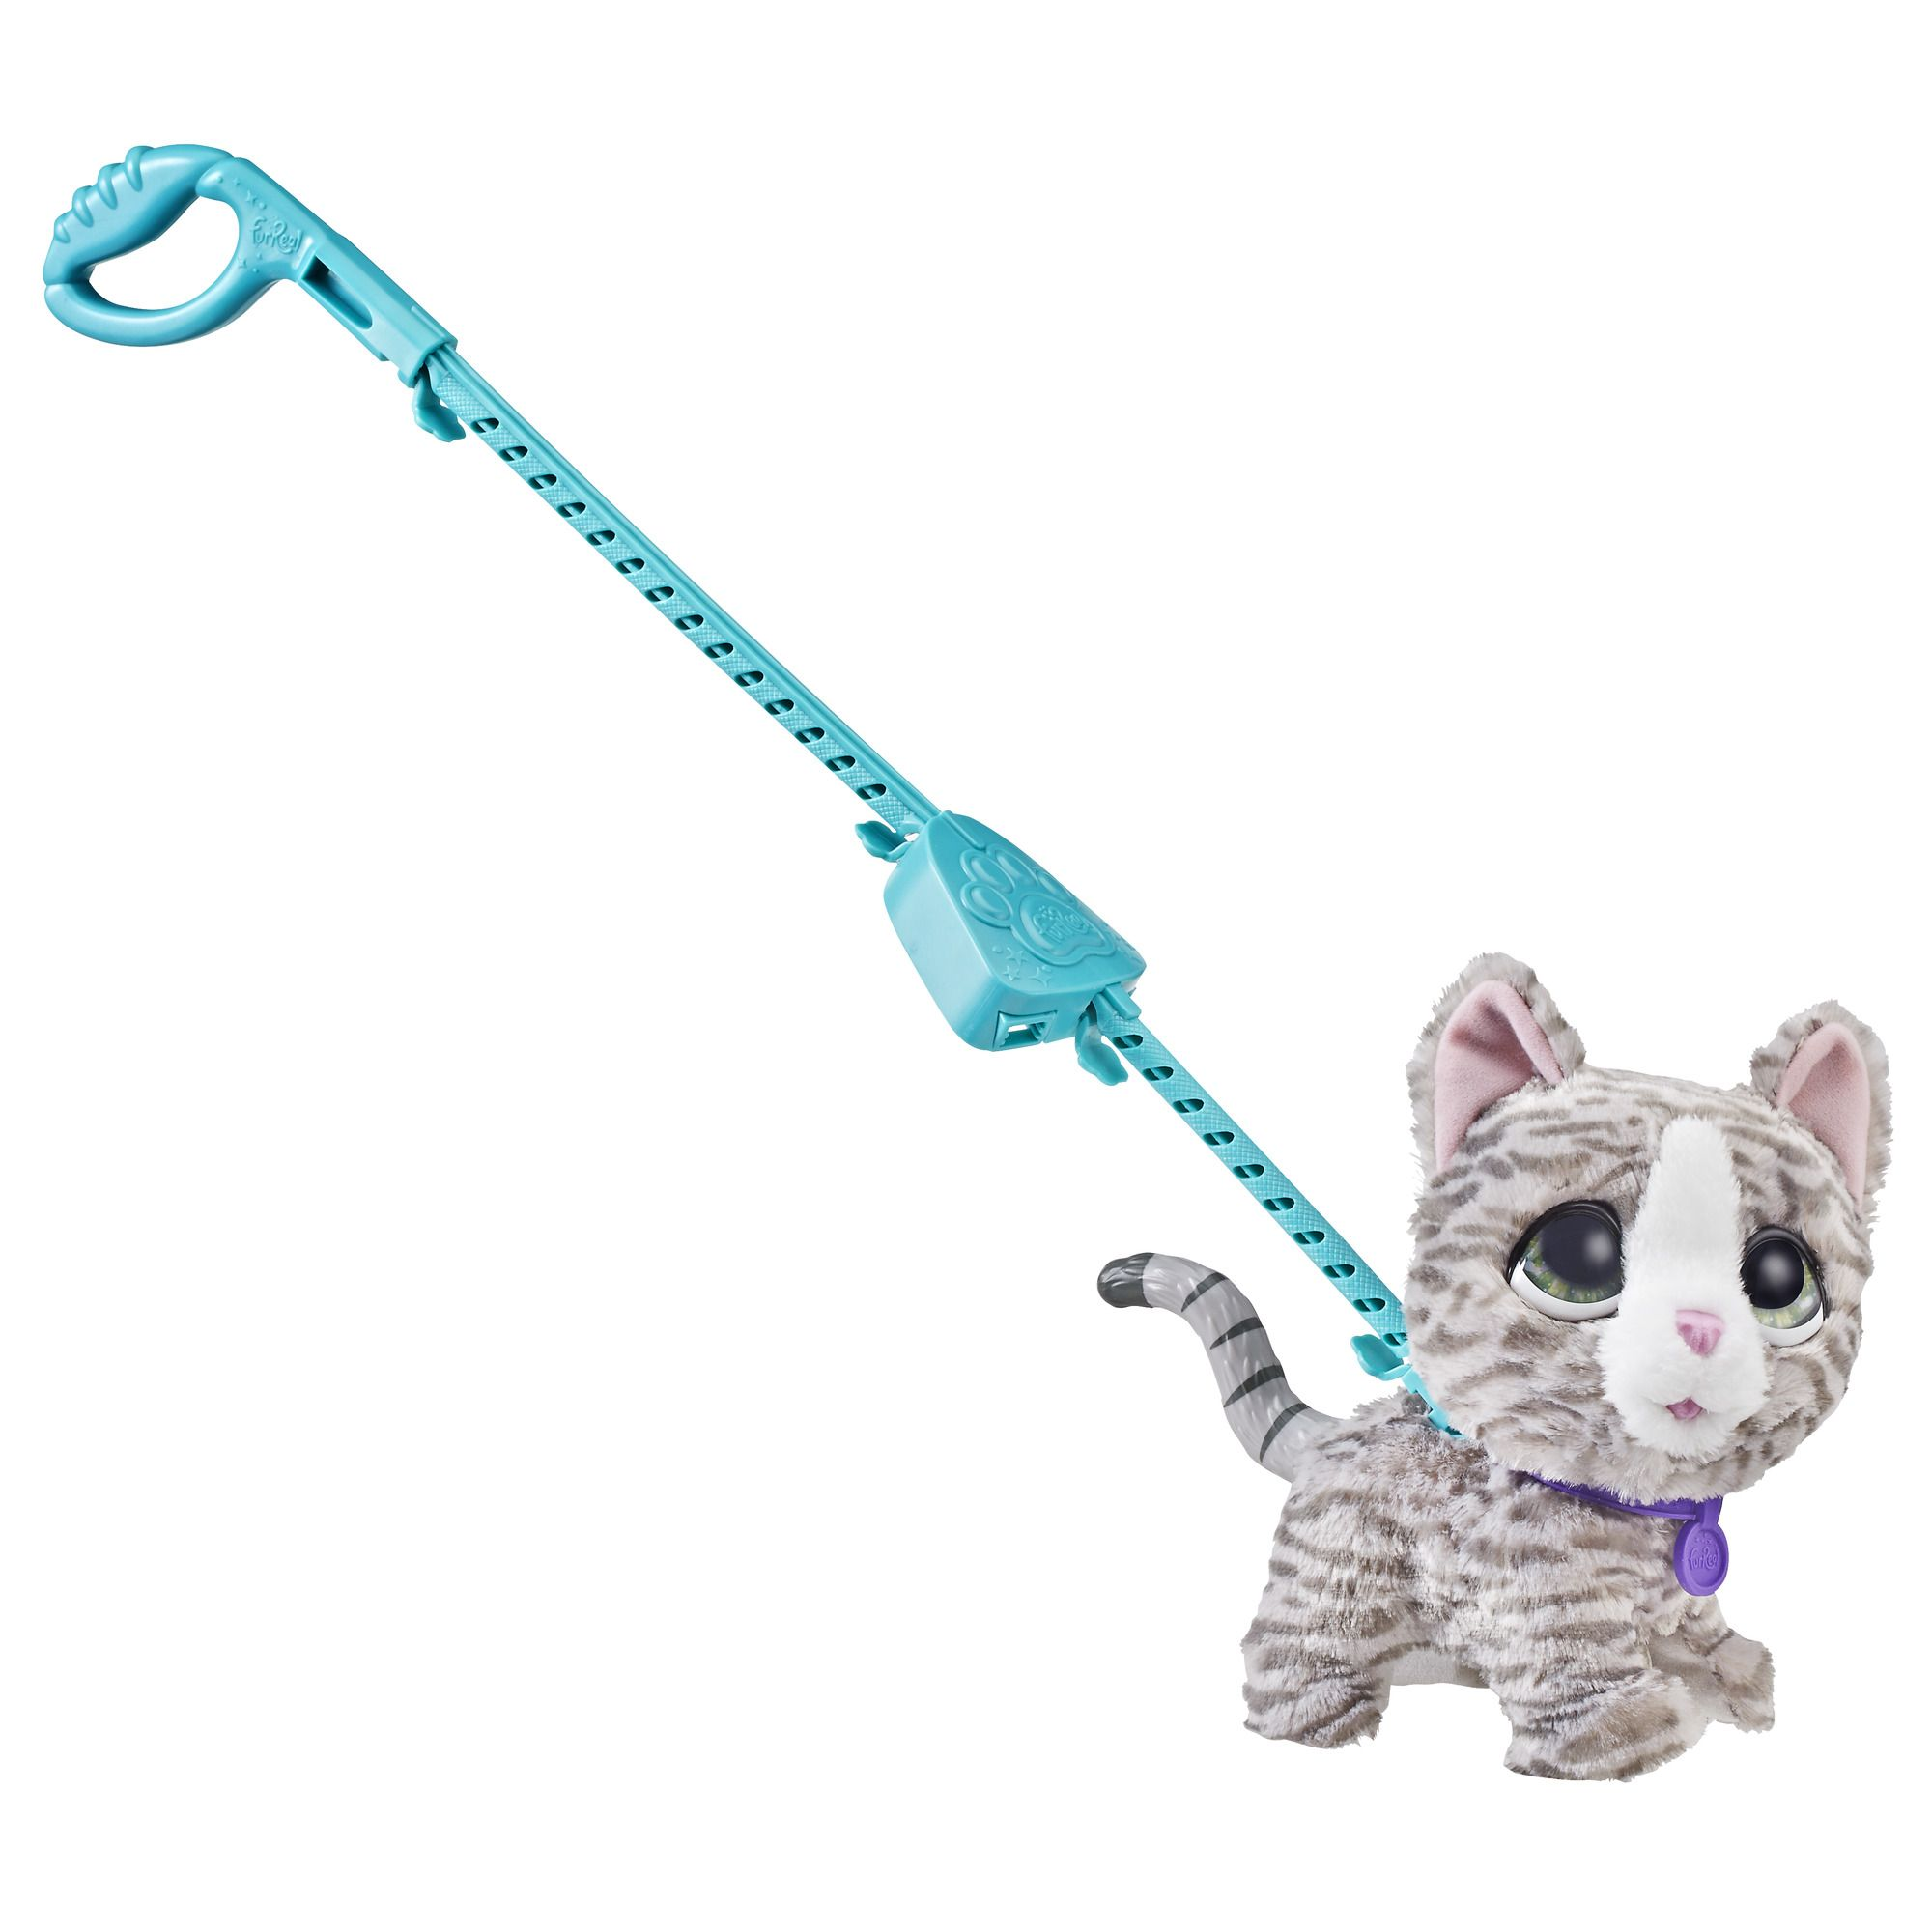 Toys Pets, Kitty, Cute toys